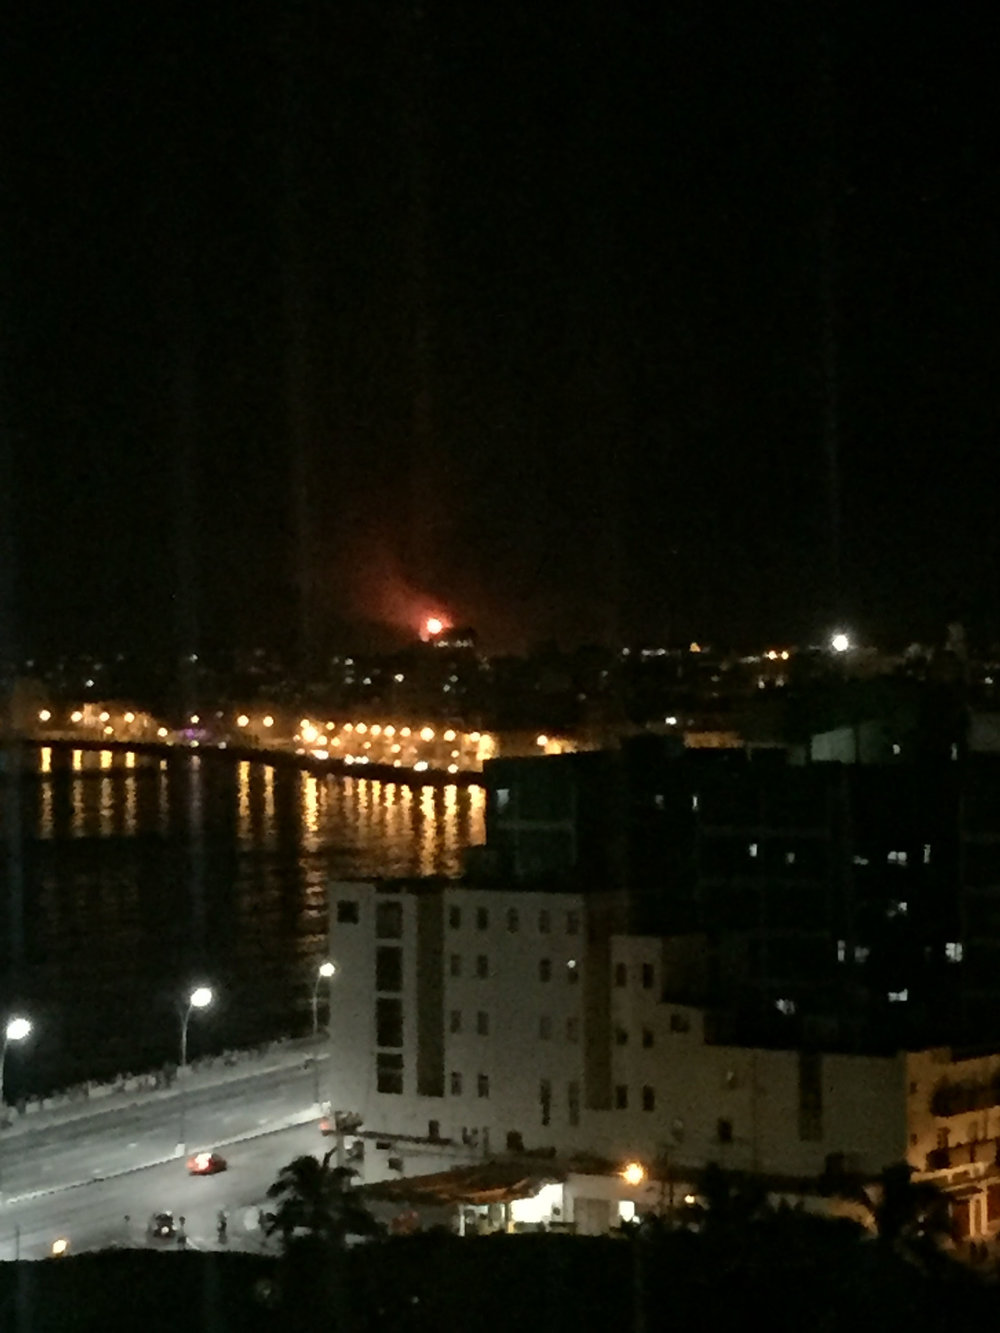 The extremely alarming fireball that I later found out was from an oil refinery across the river.